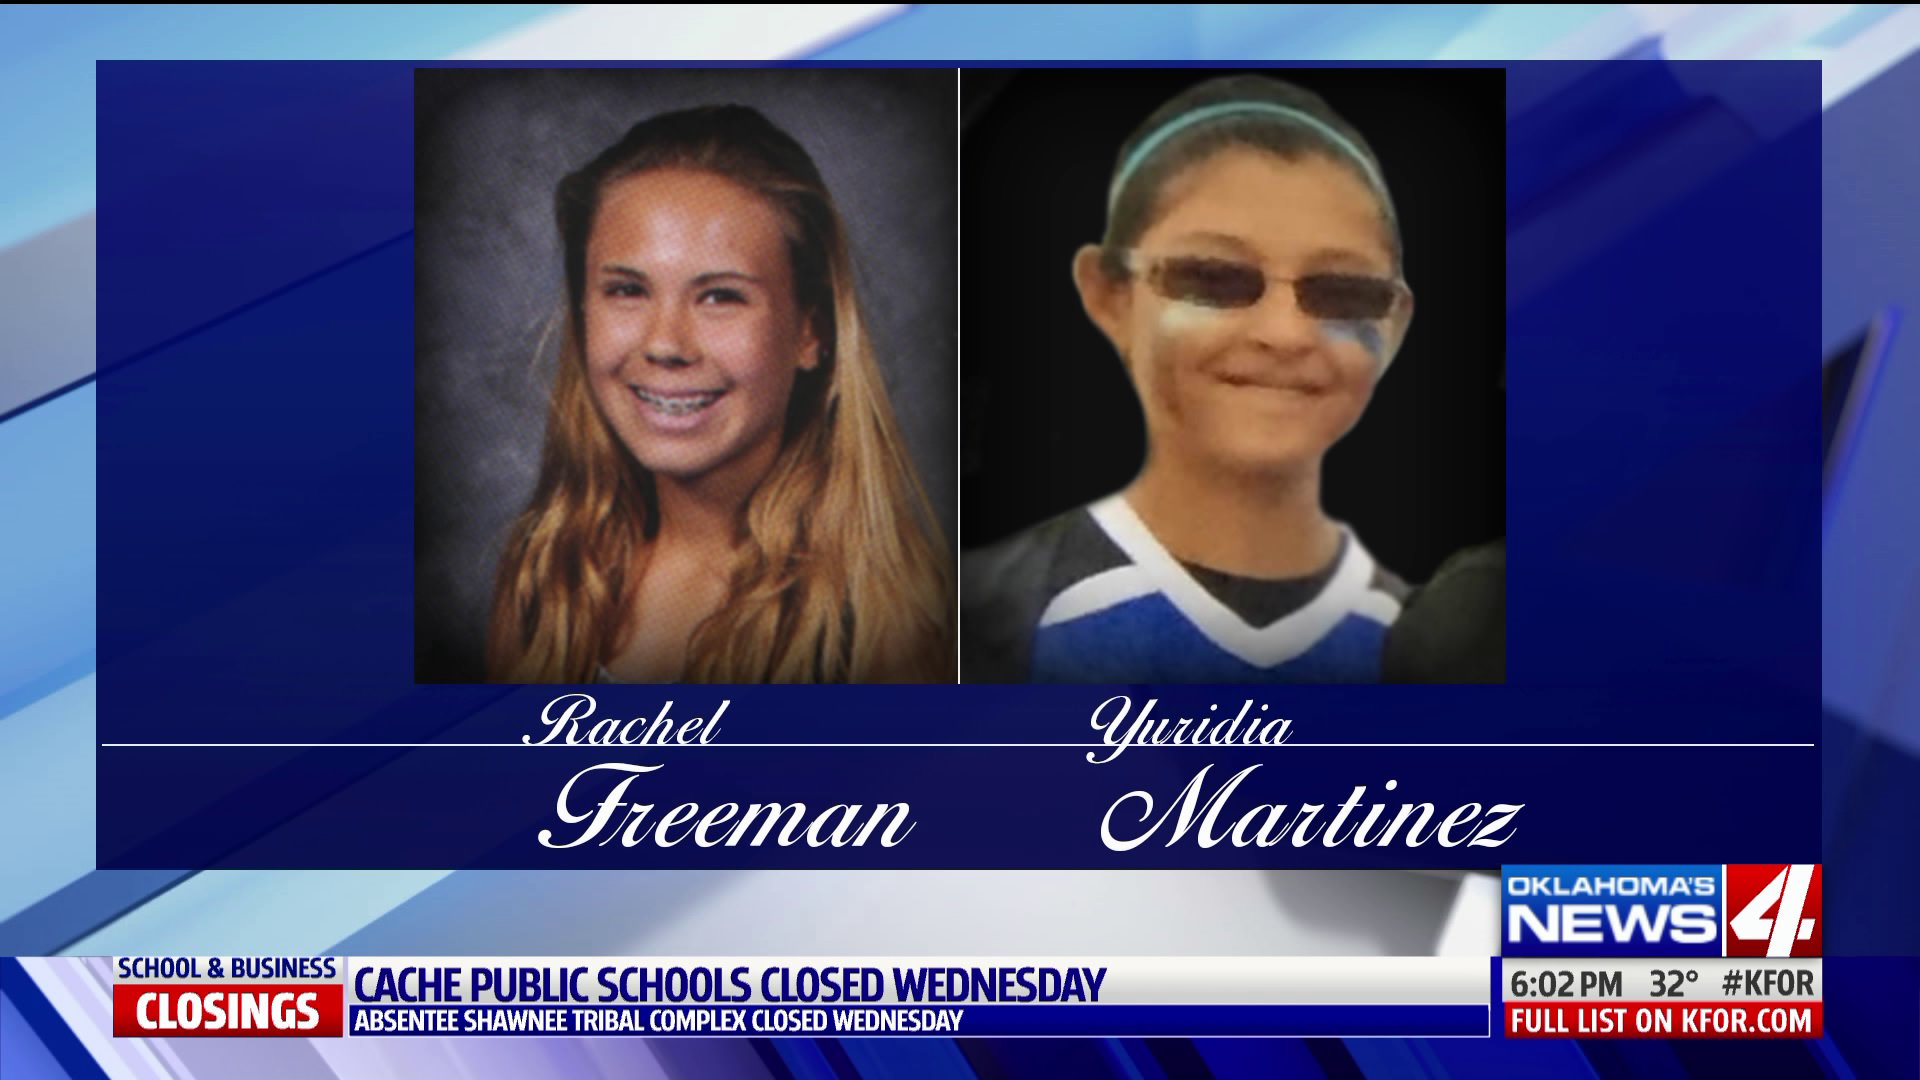 Moore High School students Rachel Freeman and Yuridia Martinez are mourned by their school and community after they died from injuries they suffered in a hit and run.